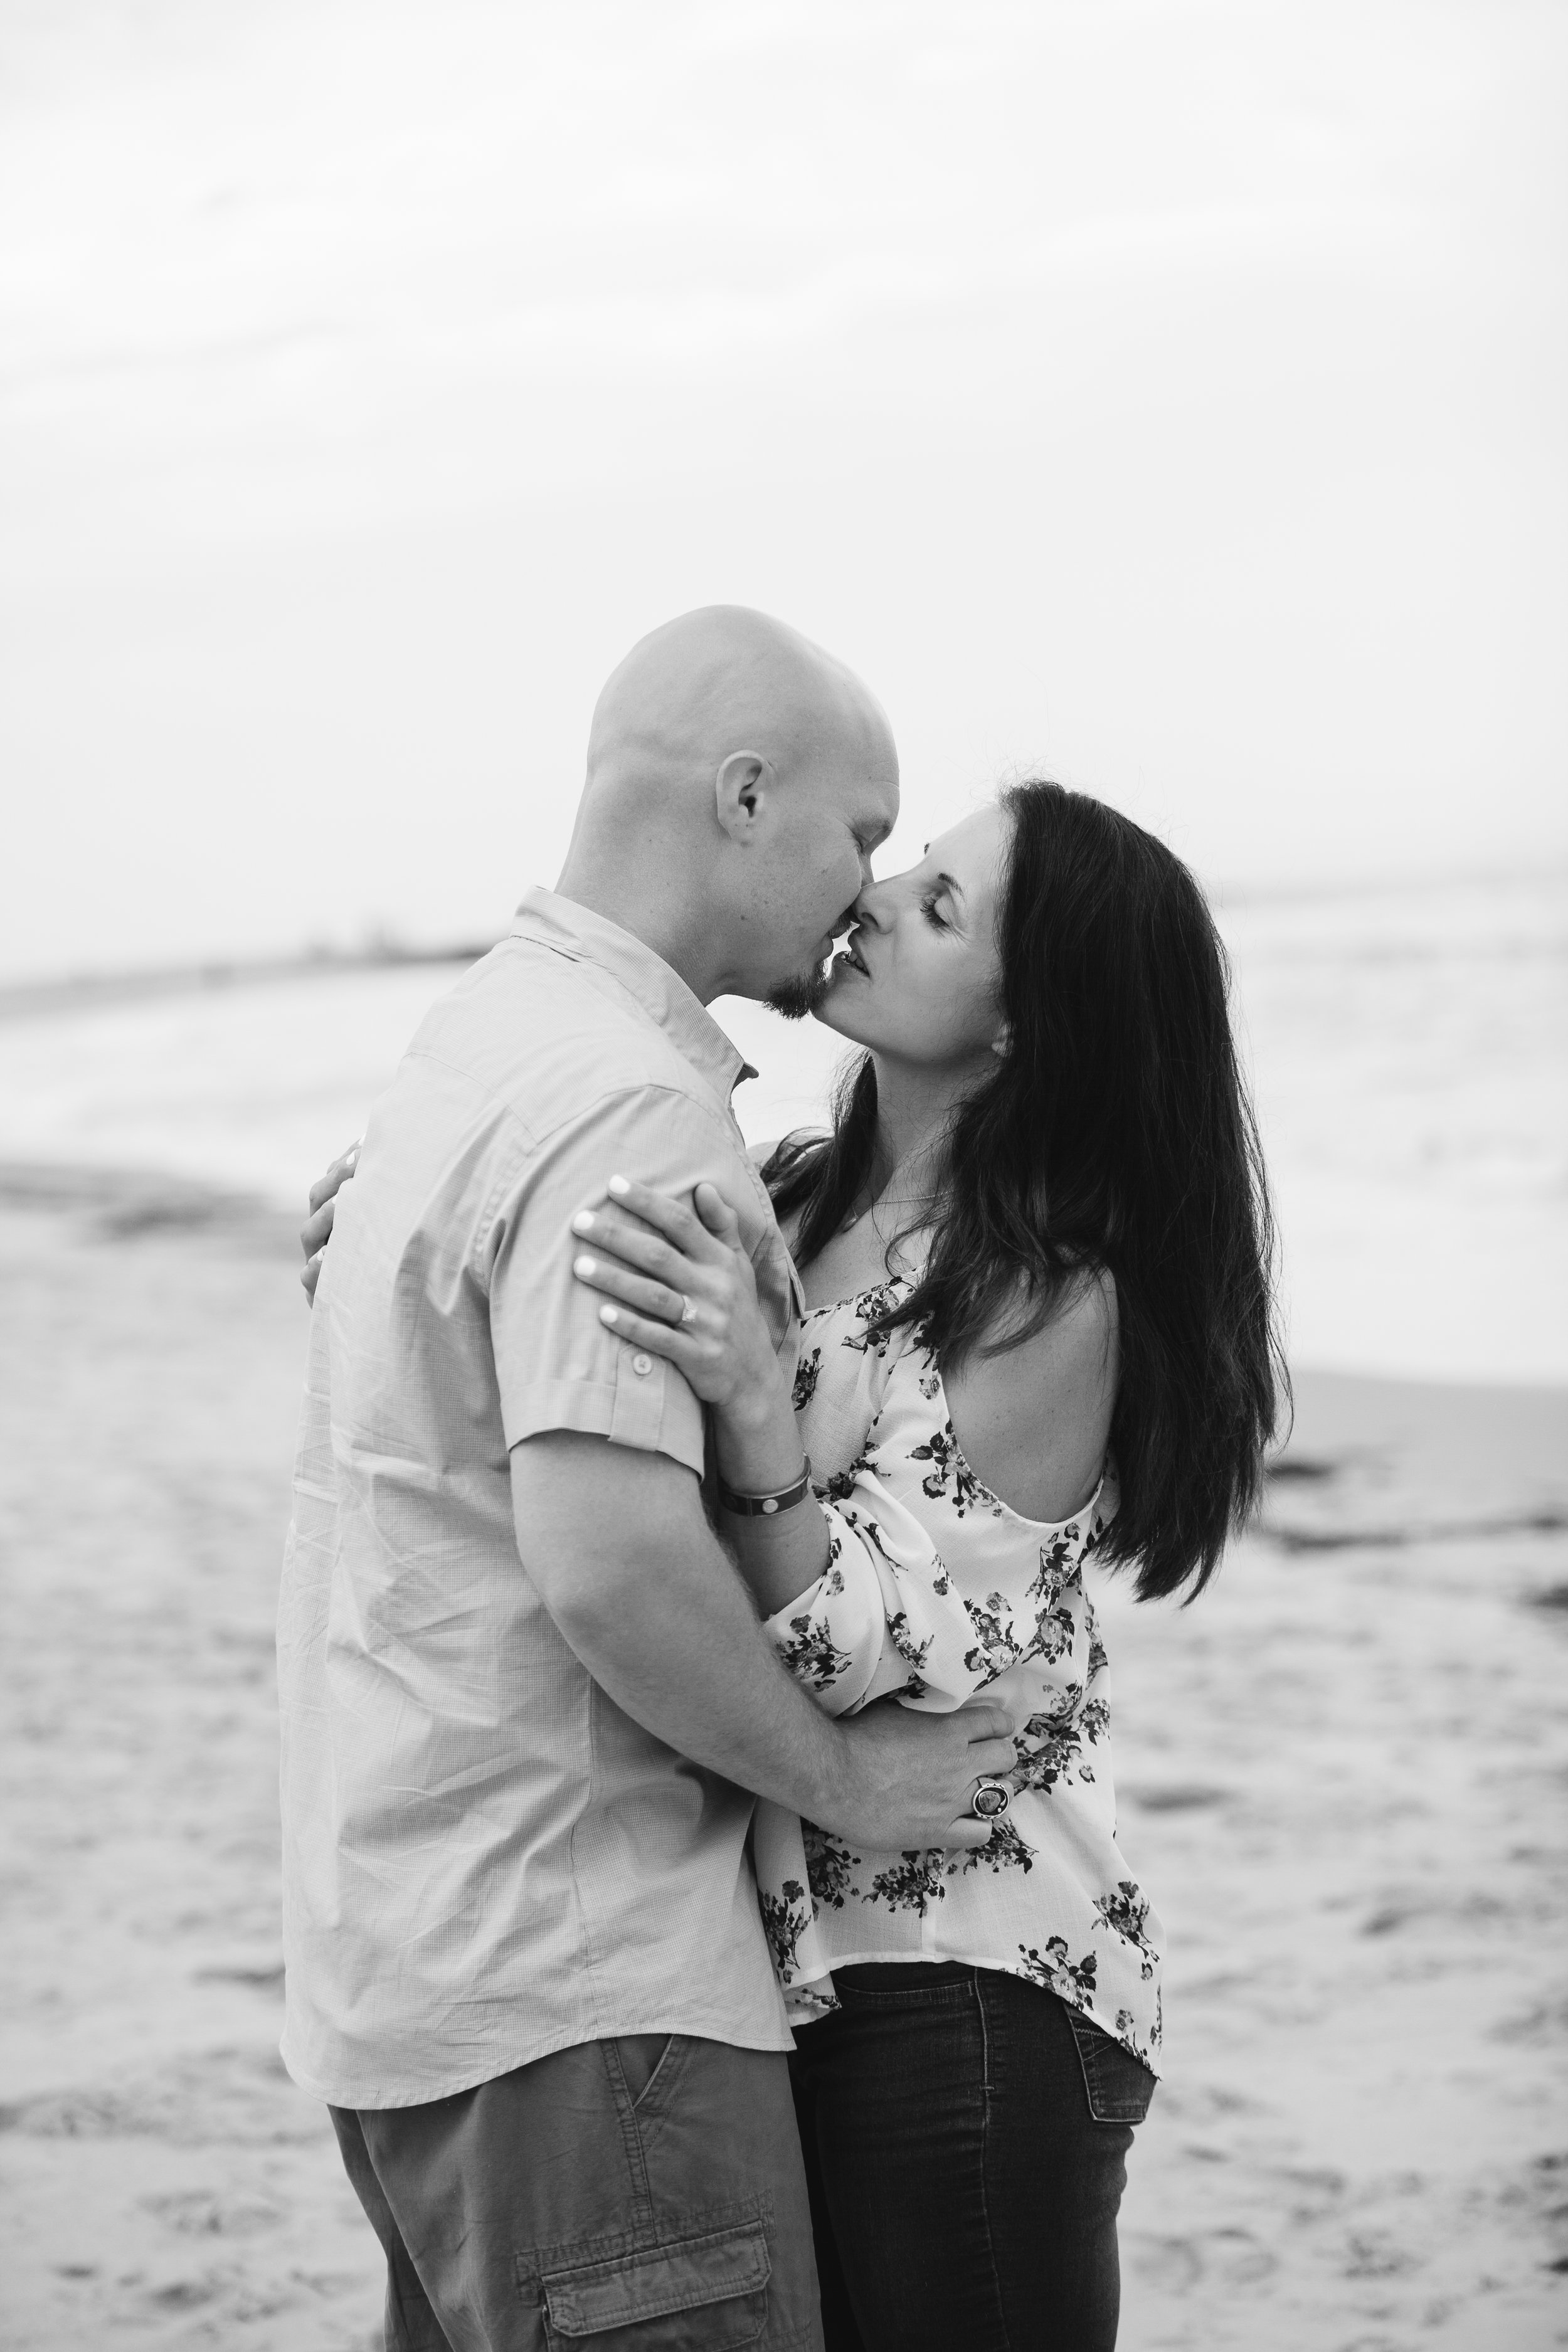 StaceyandJohnEngagementPrints-32.jpg